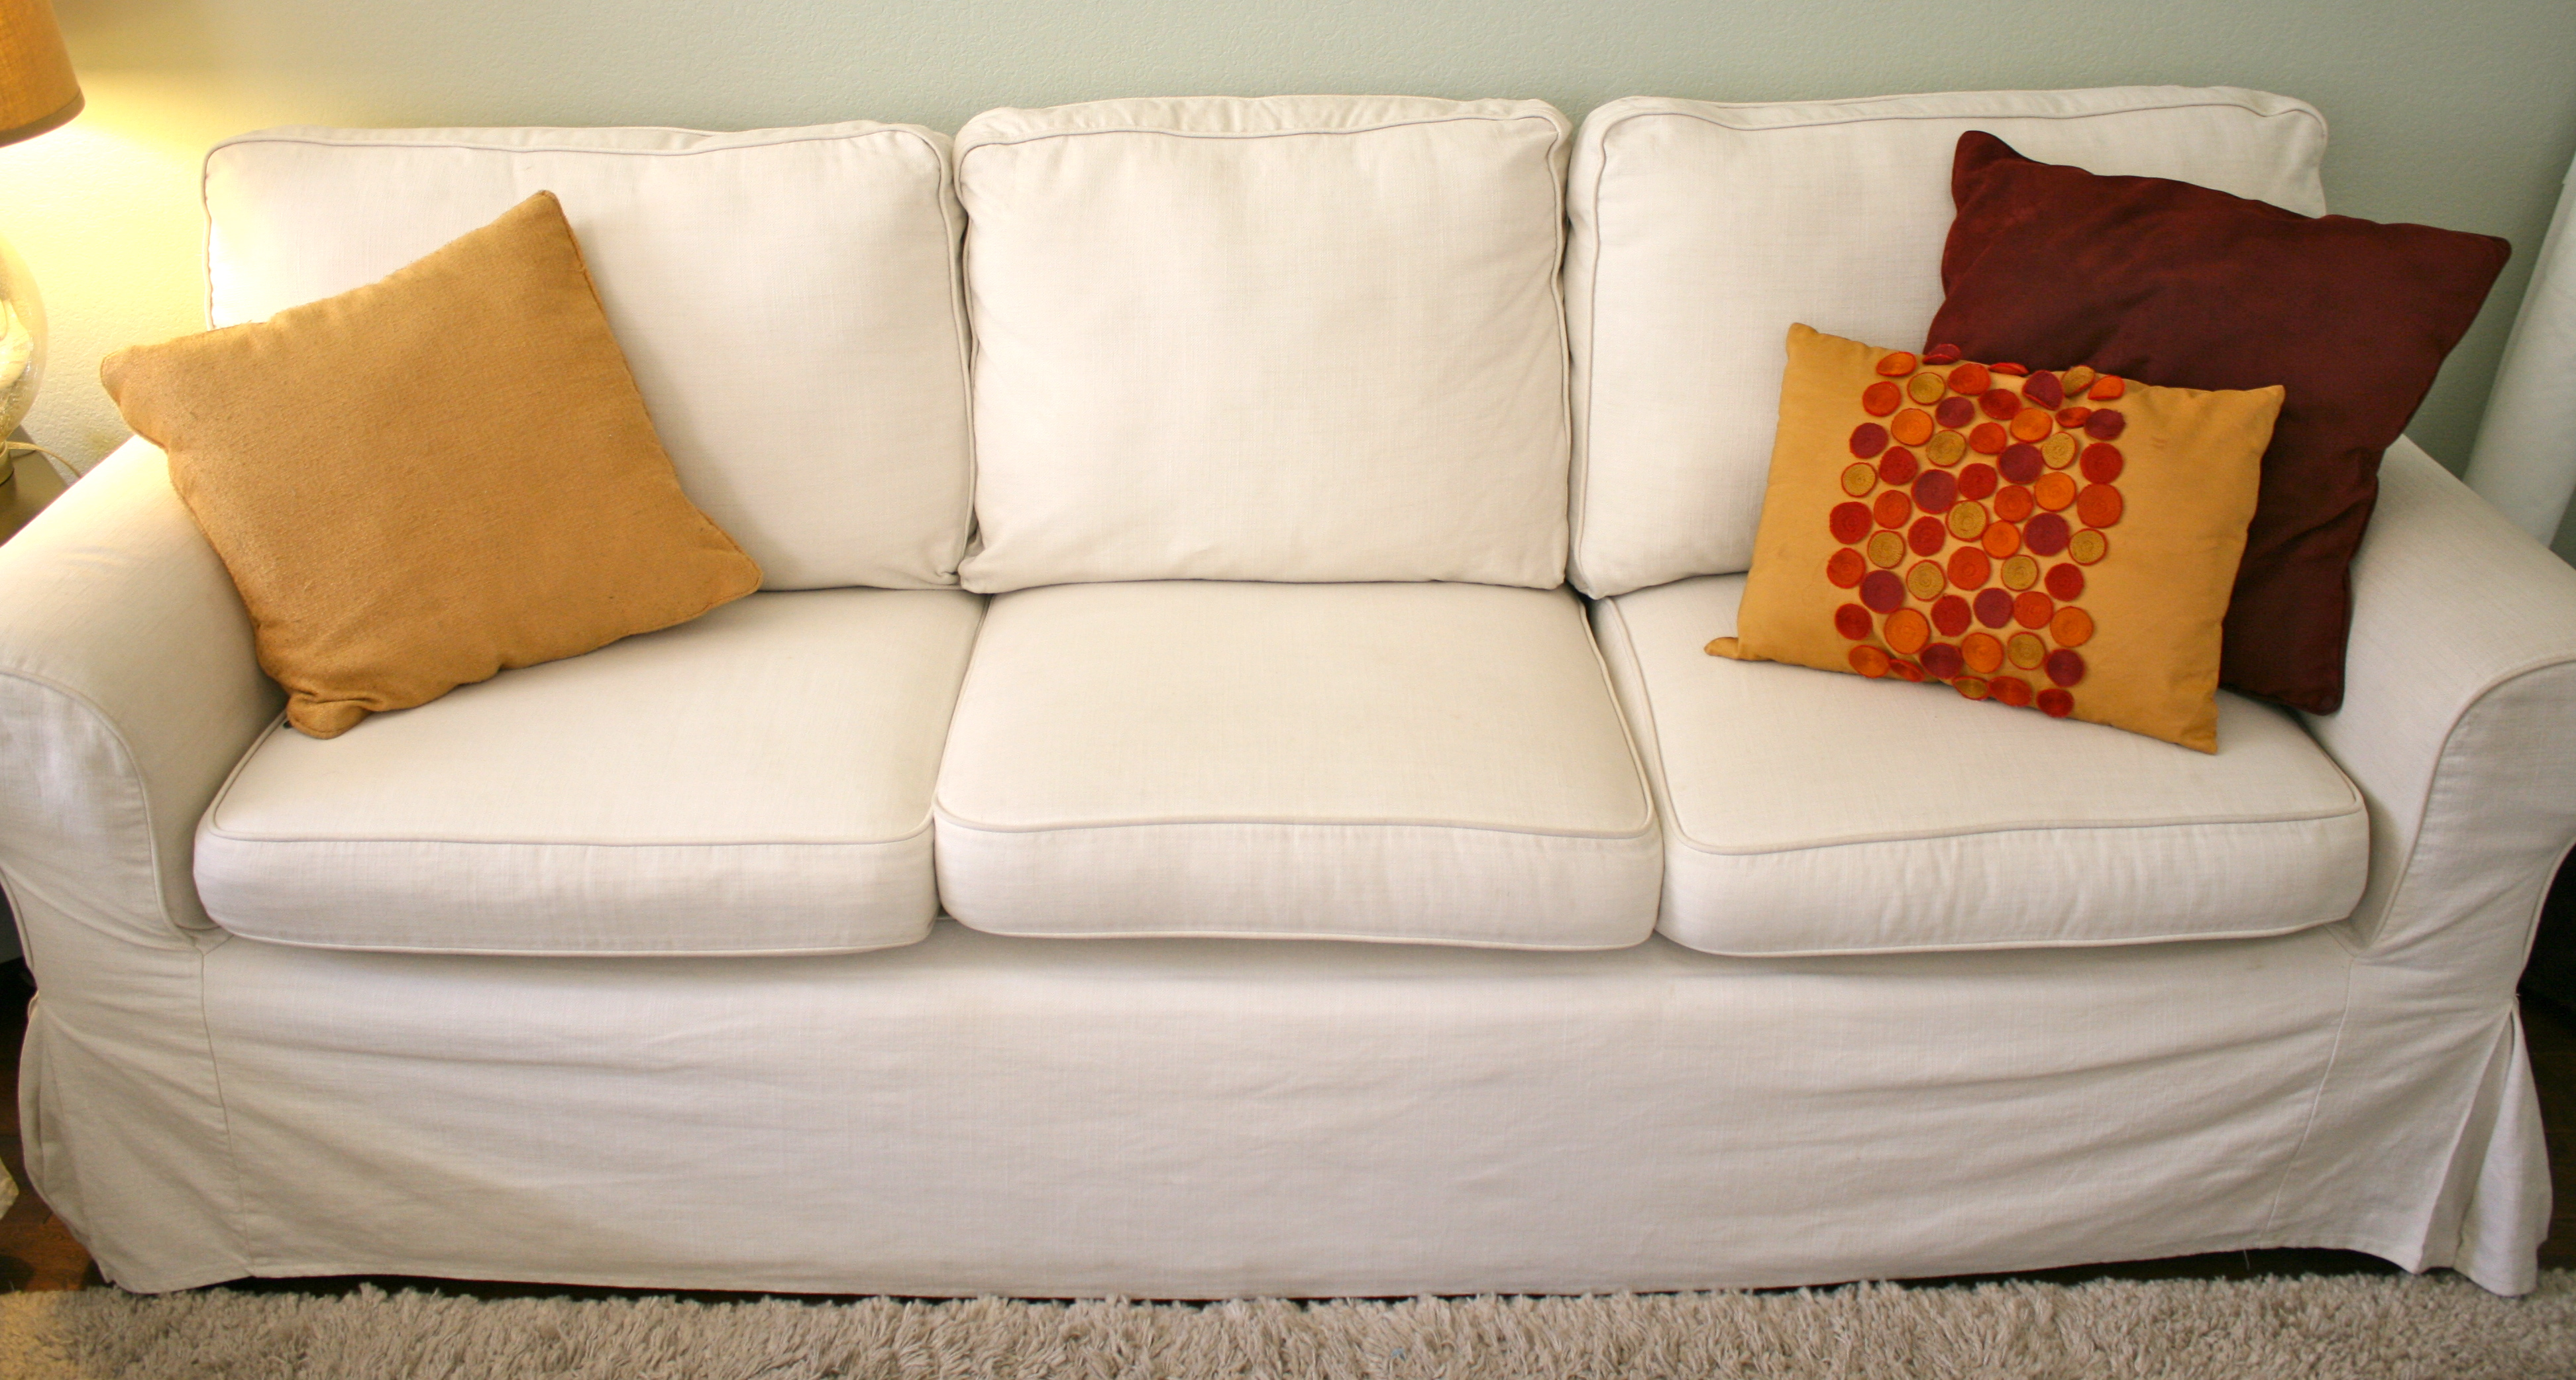 Restore Sofa Cushions | Restuffing Couch Cushions | Sofa Batting